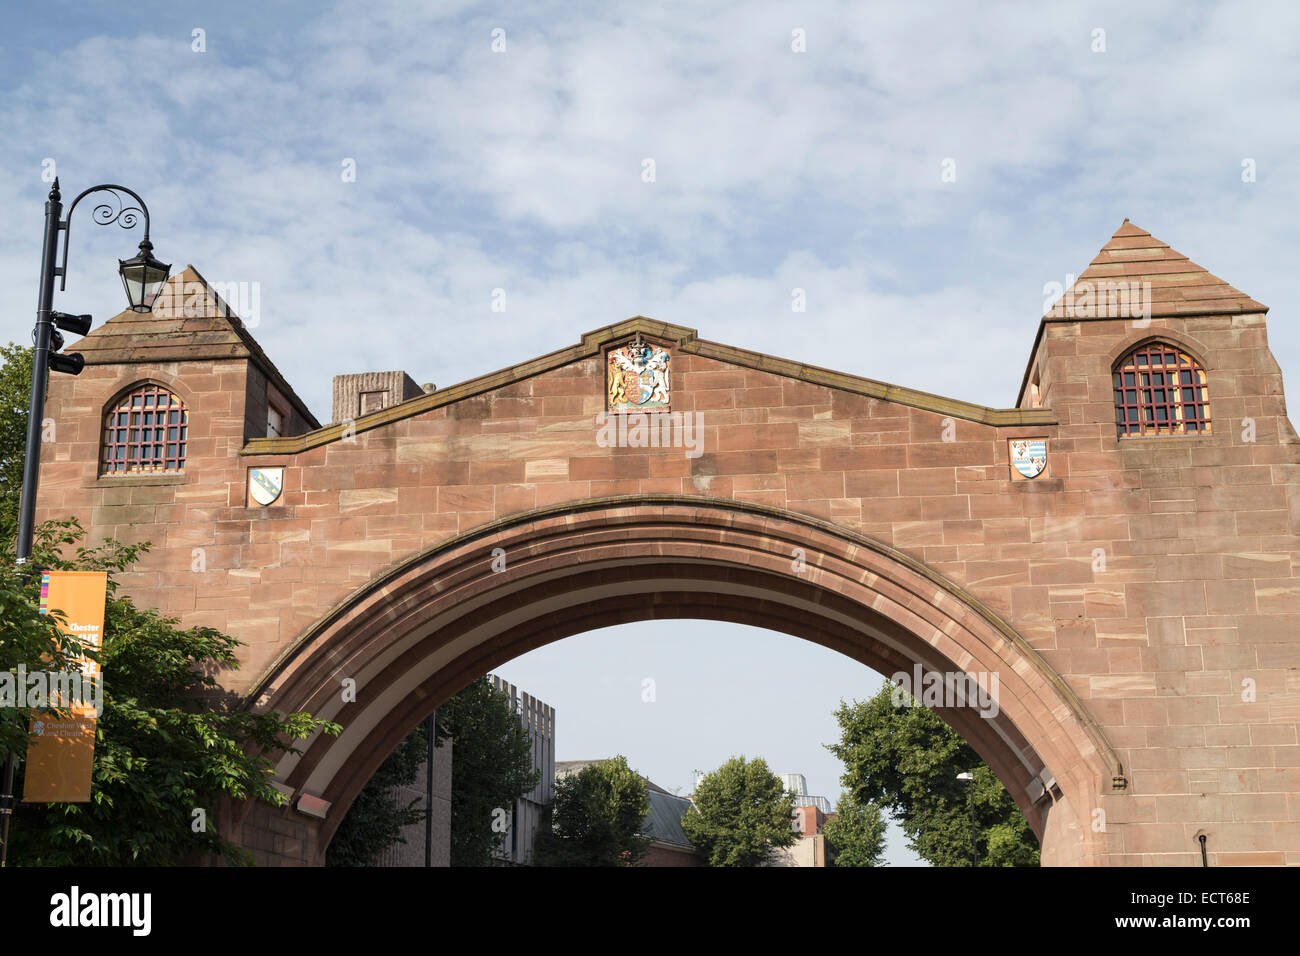 UK, Chester, Newgate arch over the road. - Stock Image